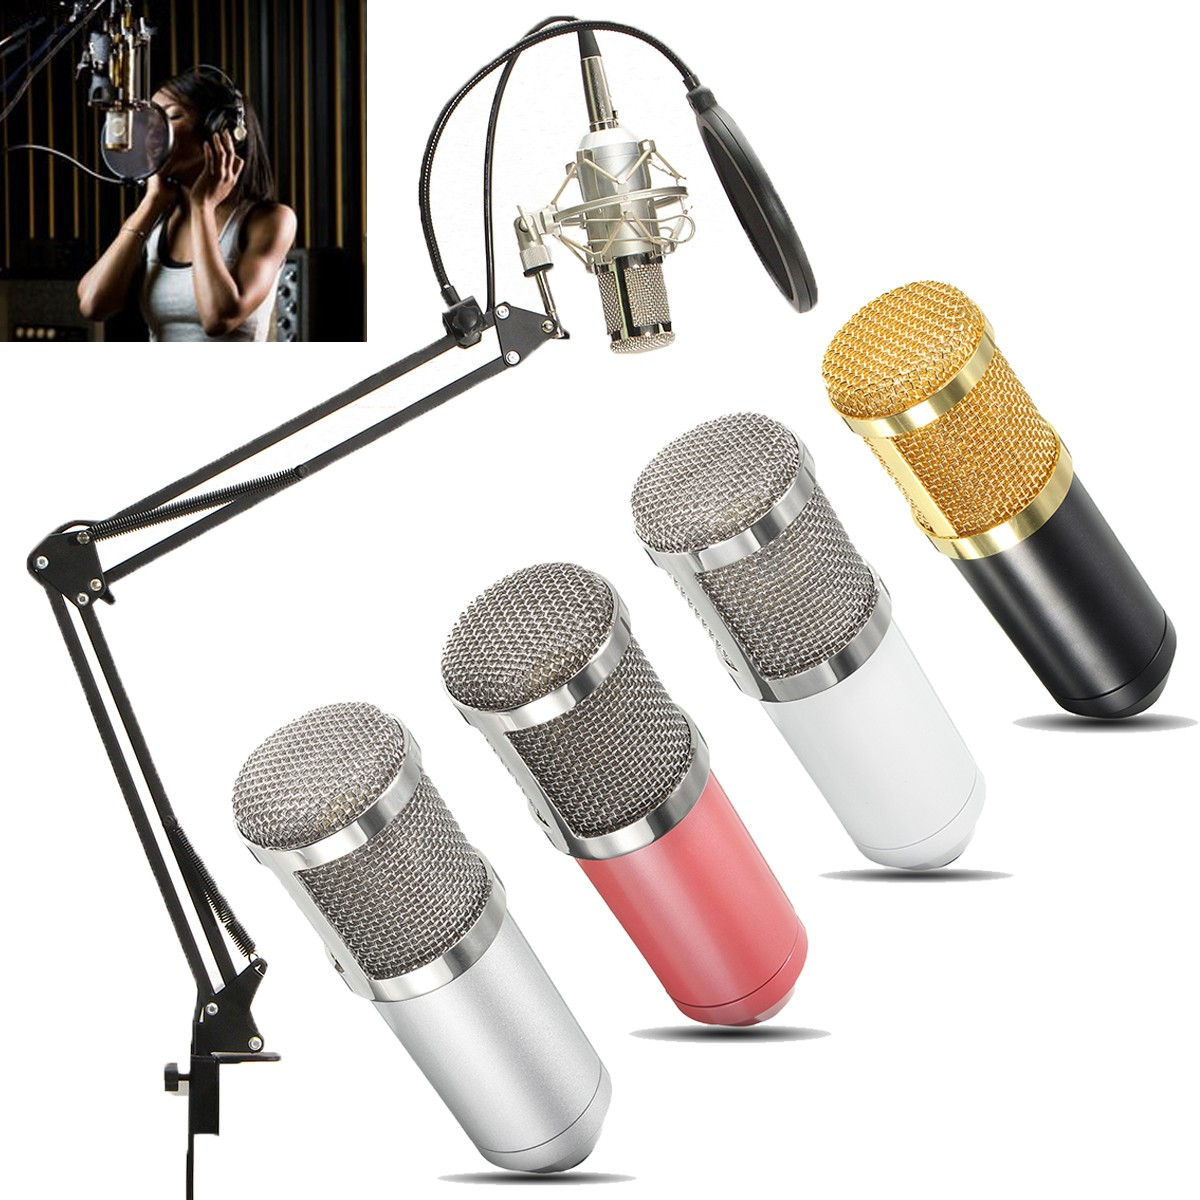 BM-800 Studio Broadcasting Recording Condenser Microphone Mic Kits Include Adjustable Mic Suspension Scissor Arm, Shock Mount, Double-layer Filter and Sponge Cover